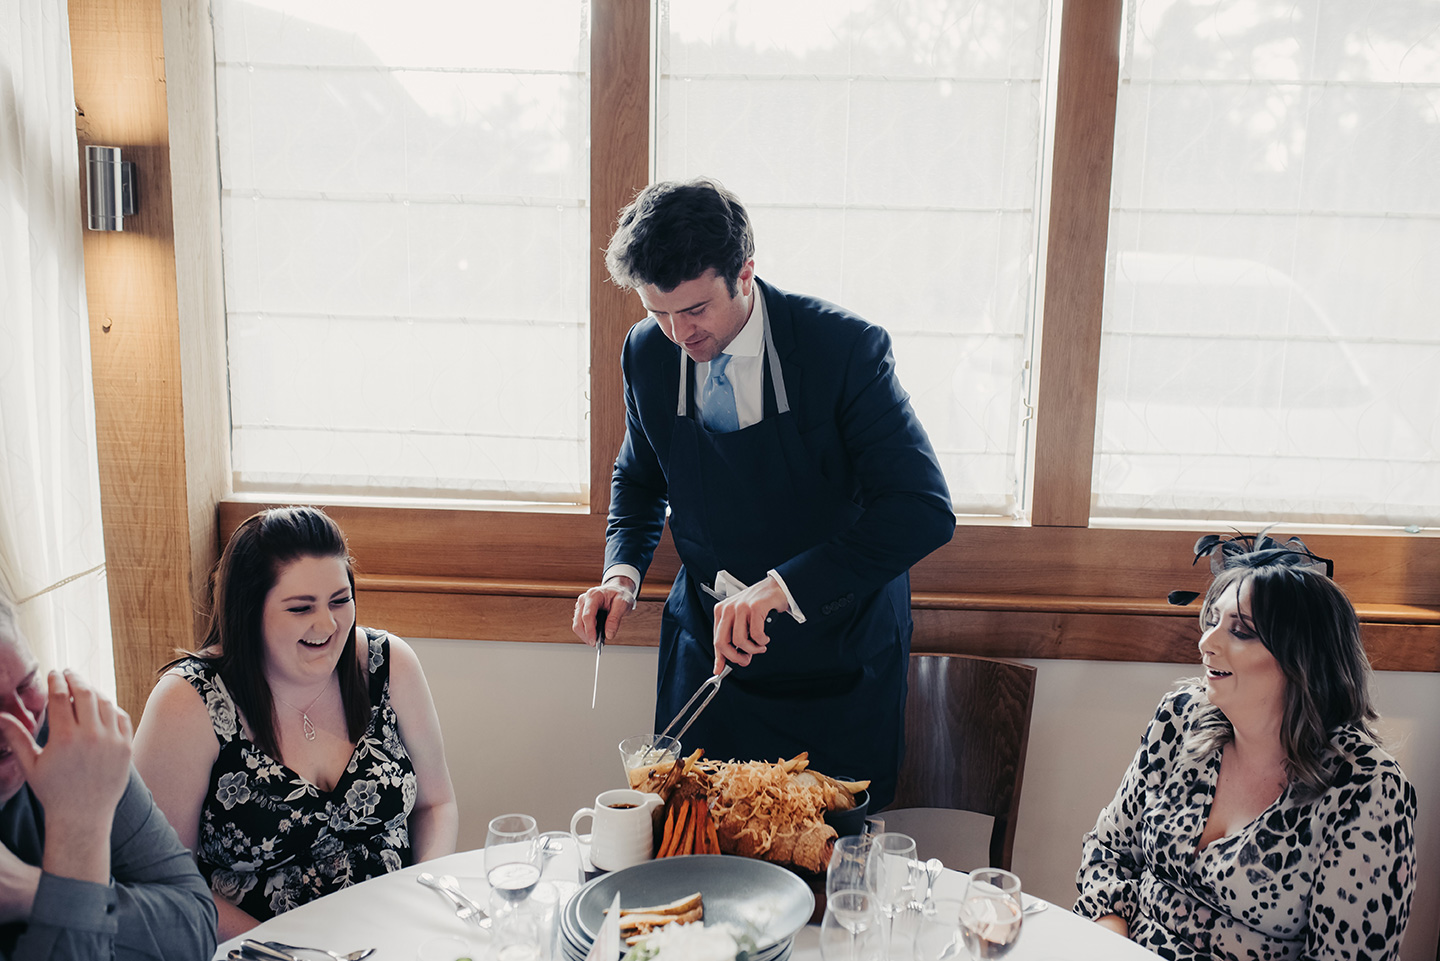 Guests gets involved by carving the meat ready for the main wedding meal